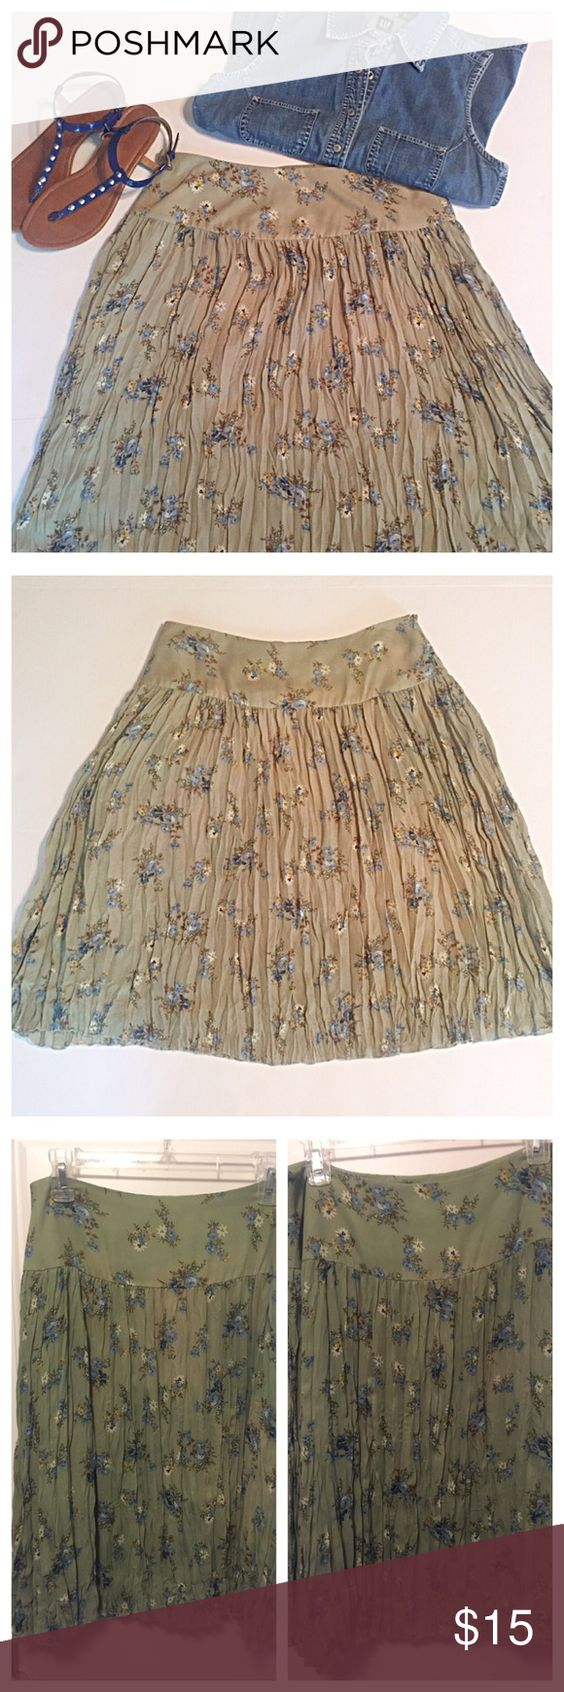 """Allison Taylor Floral Crinkle Skirt Feminine skirt pairs perfectly with denim and flats or dress it up with an embellished top and heels. It is perfect for travel! It features a wide waist band, crinkled skirt, and side zipper. Measurements: waist 16"""", length 38.5"""". Fully lined. 100% polyester. Allison Taylor Skirts"""